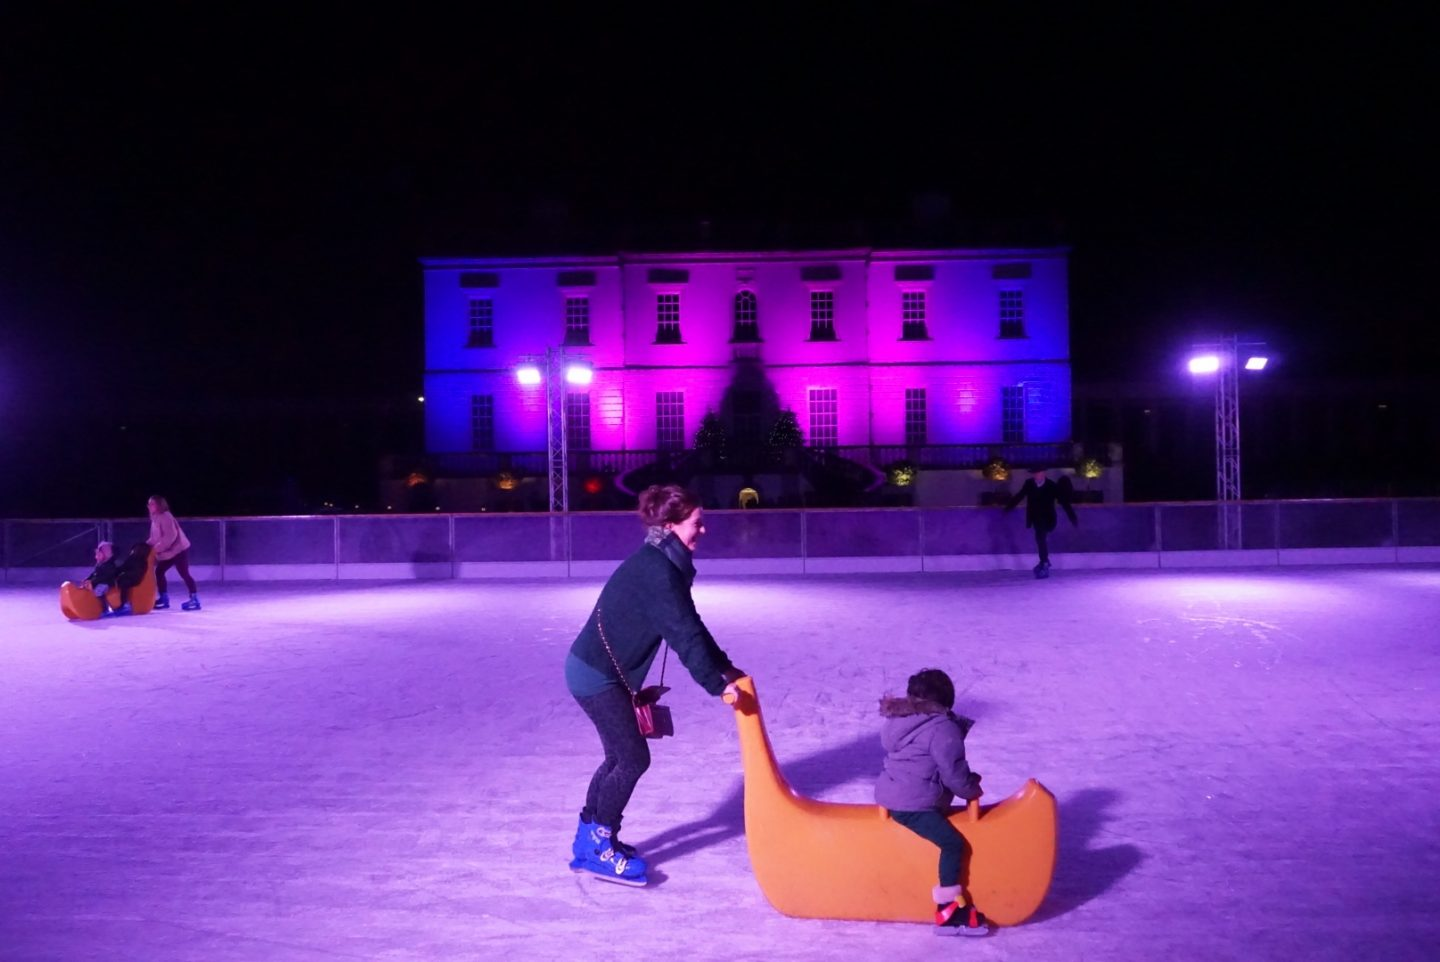 Queen's House Ice Rink in Greenwich